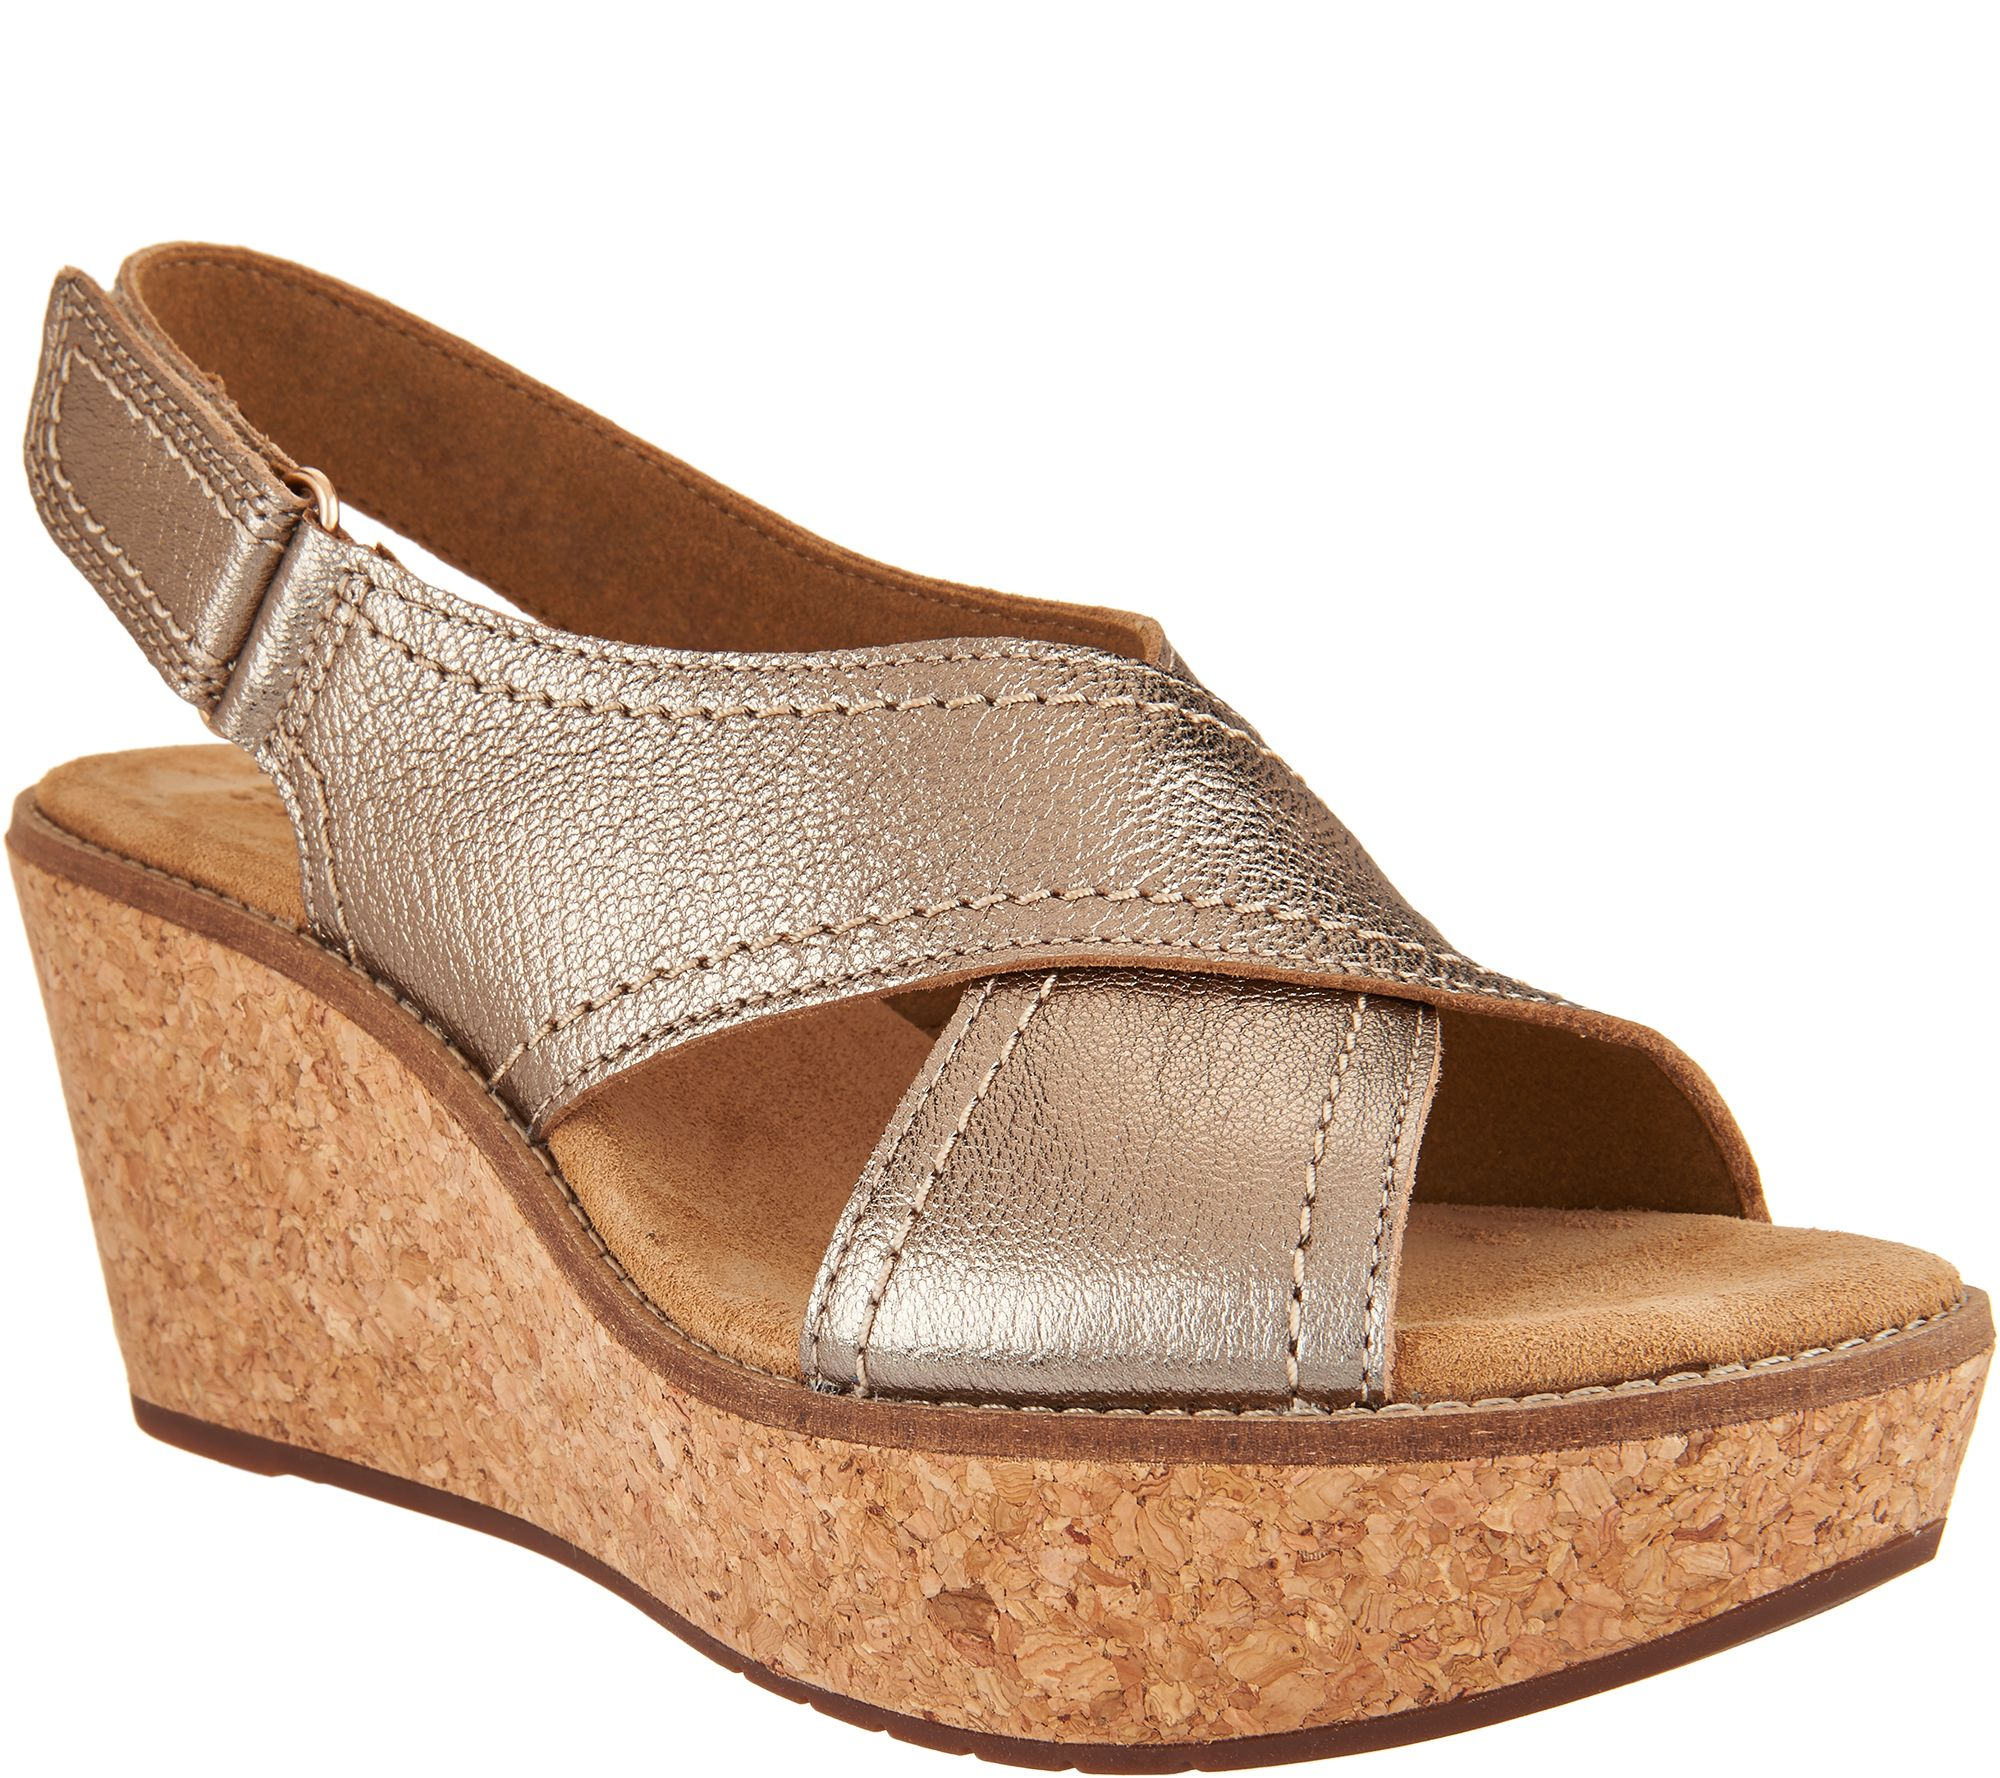 bb38d8ec7f9 Clarks Artisan Leather Cross Band Wedge Sandals - Aisley Tulip - Page 1 —  QVC.com